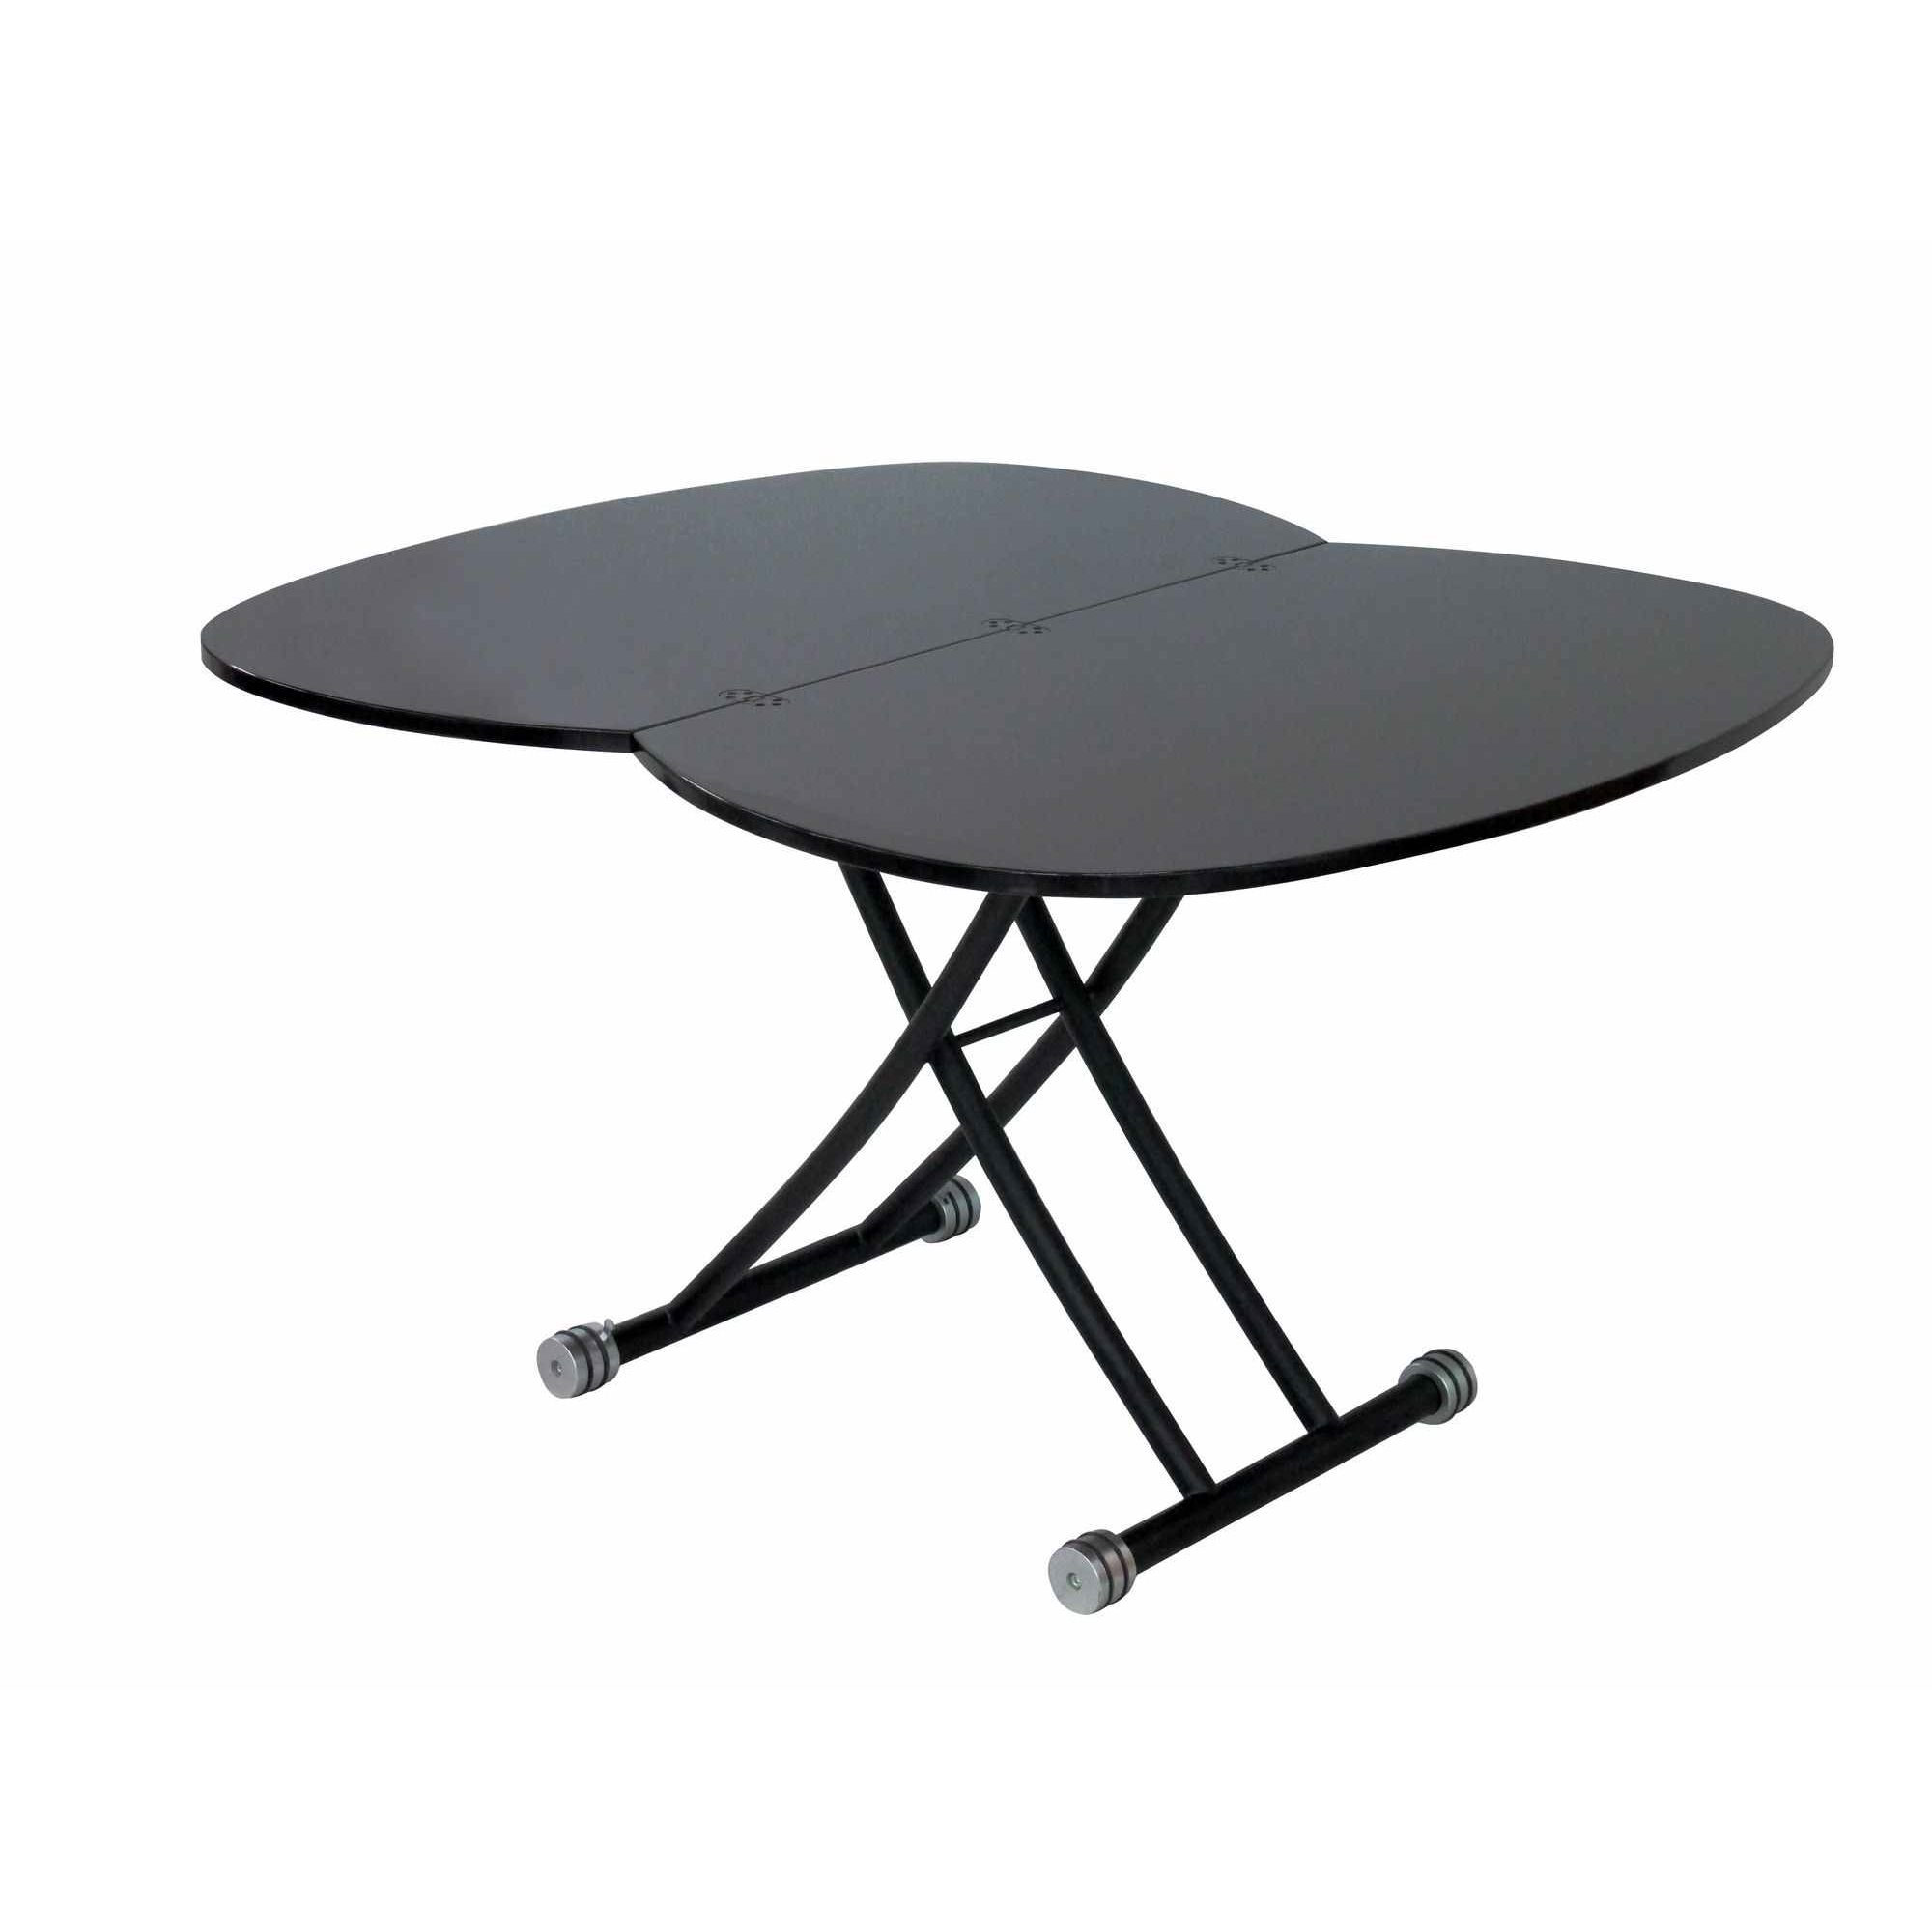 Table basse relevable avec rallonge maison design for Table noir rallonge